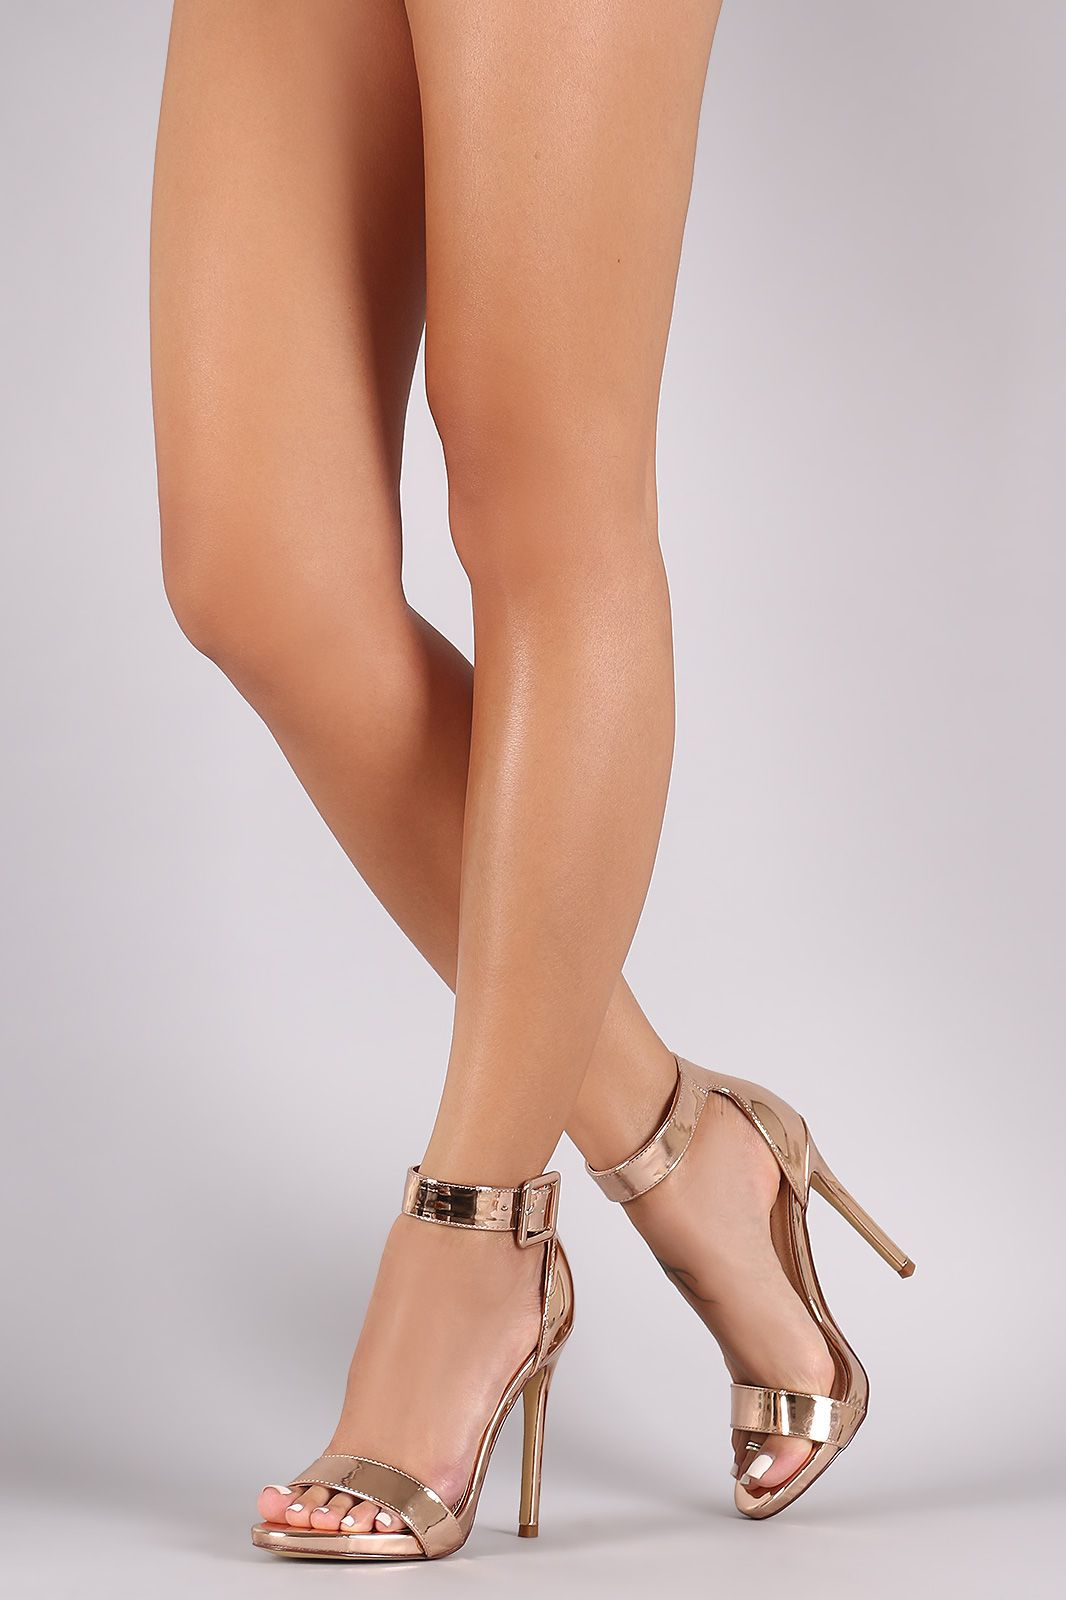 73574be2ea3 Shop Metallic Buckled Ankle Strap Stiletto Heel. This heel features an open  toe